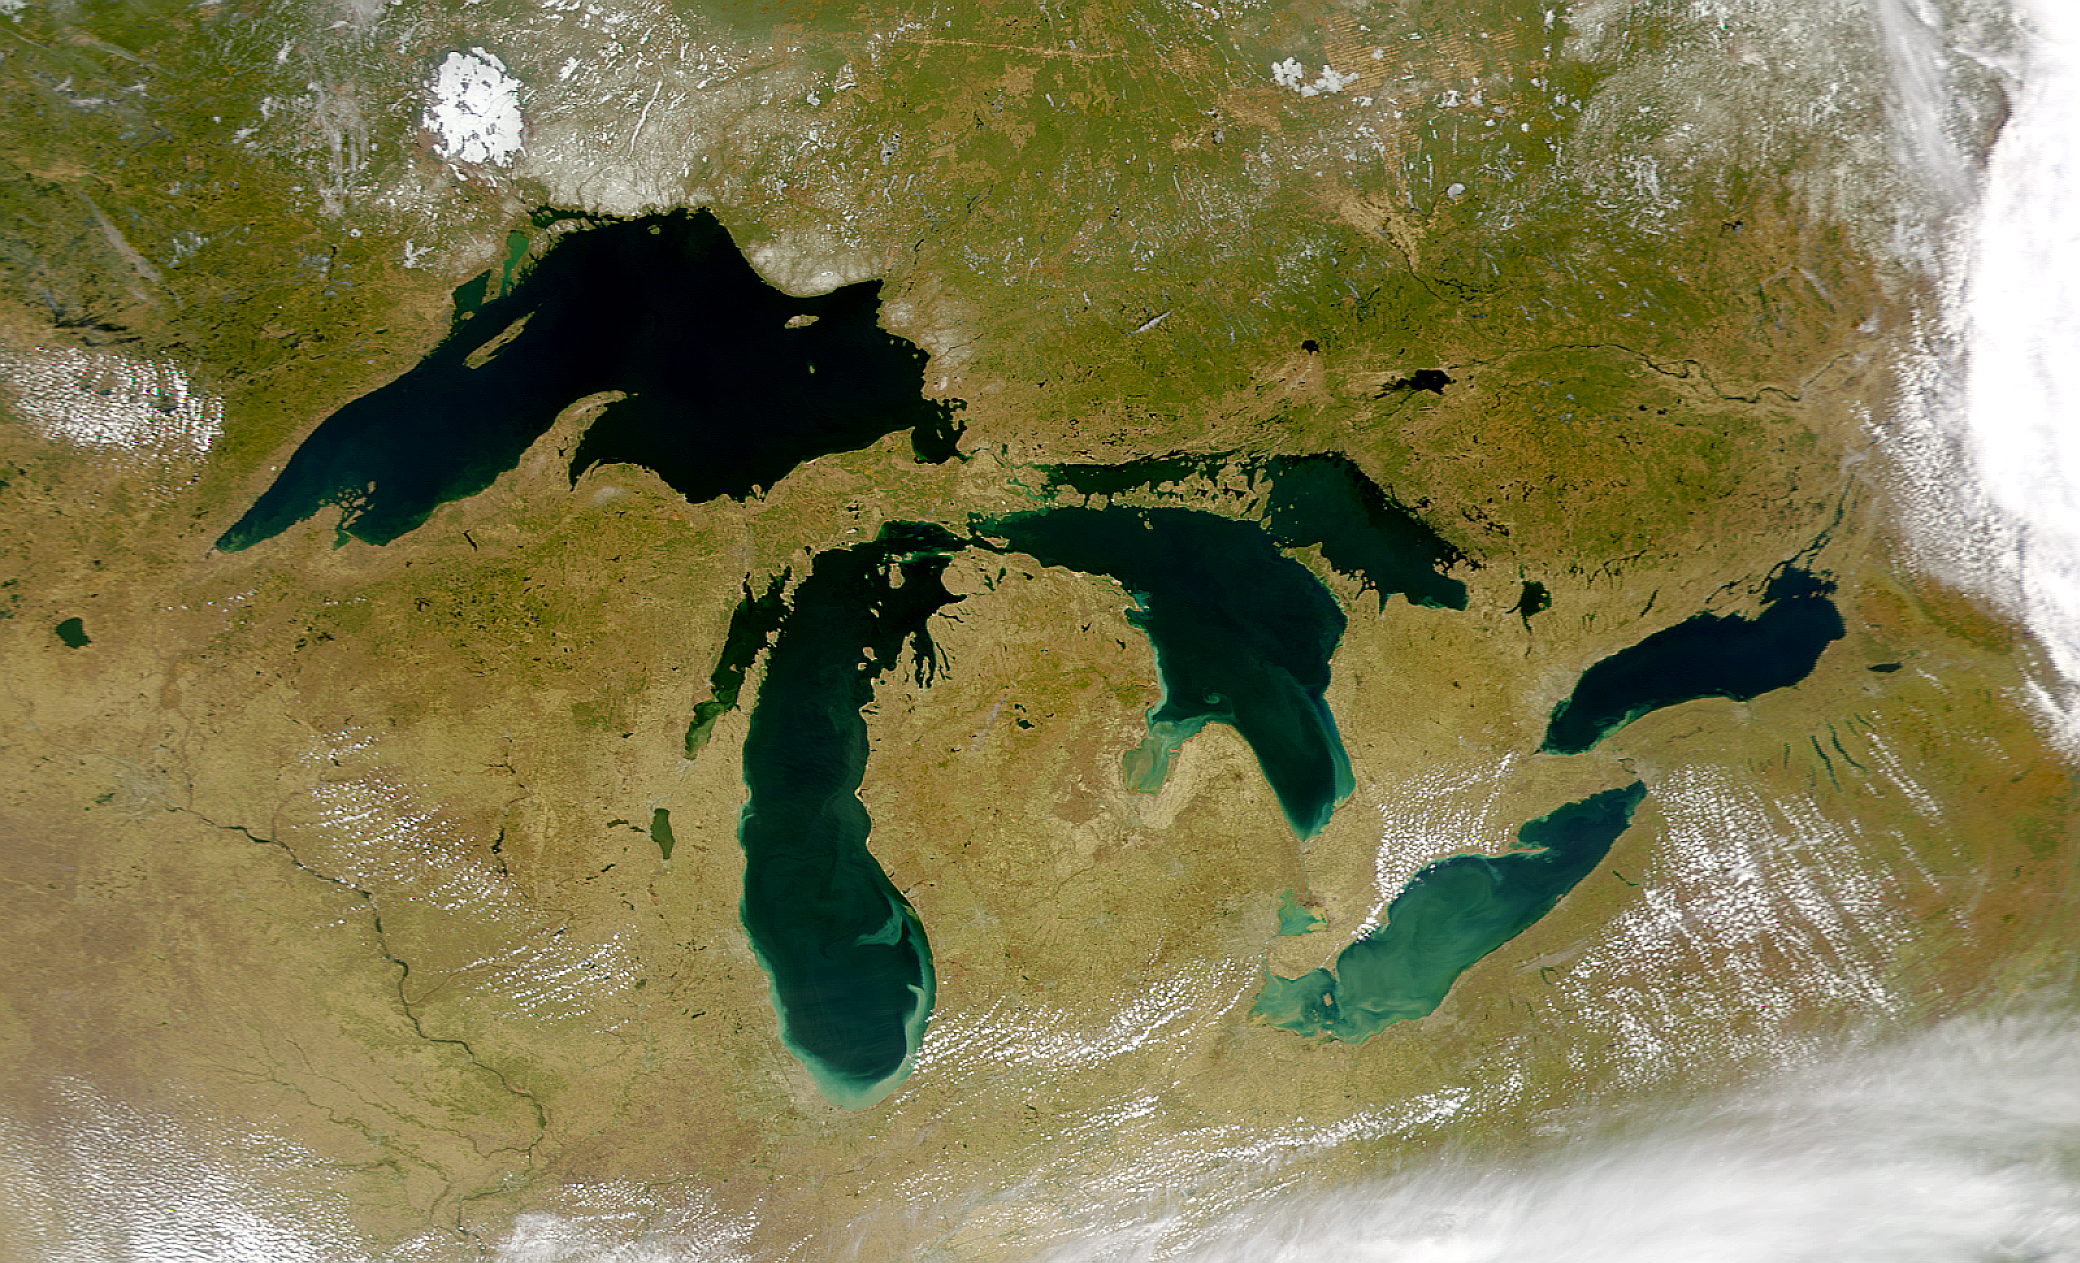 NASA photo of Great Lakes region